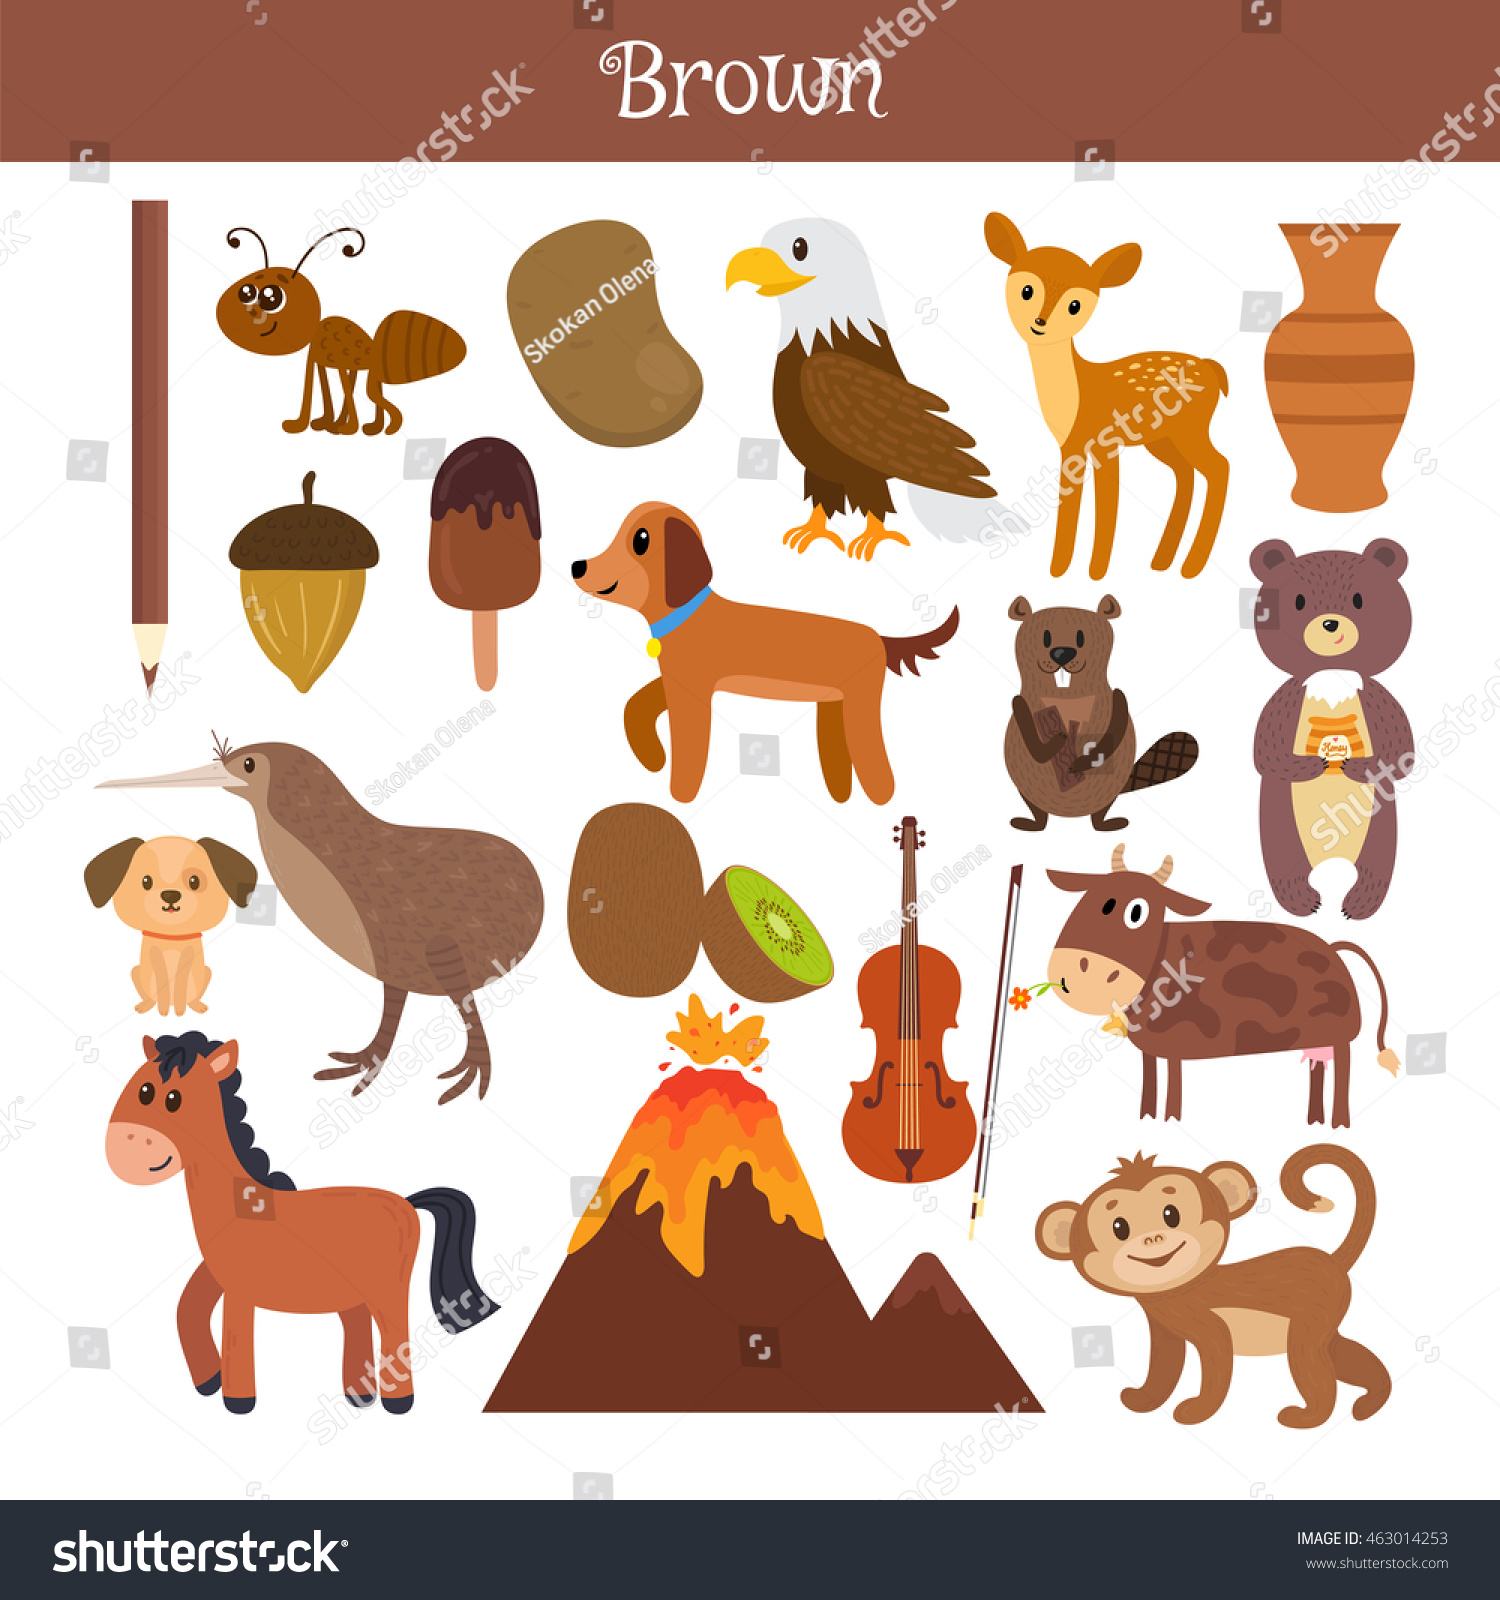 Brown Learn the color Education set Illustration of primary colors Vector illustration